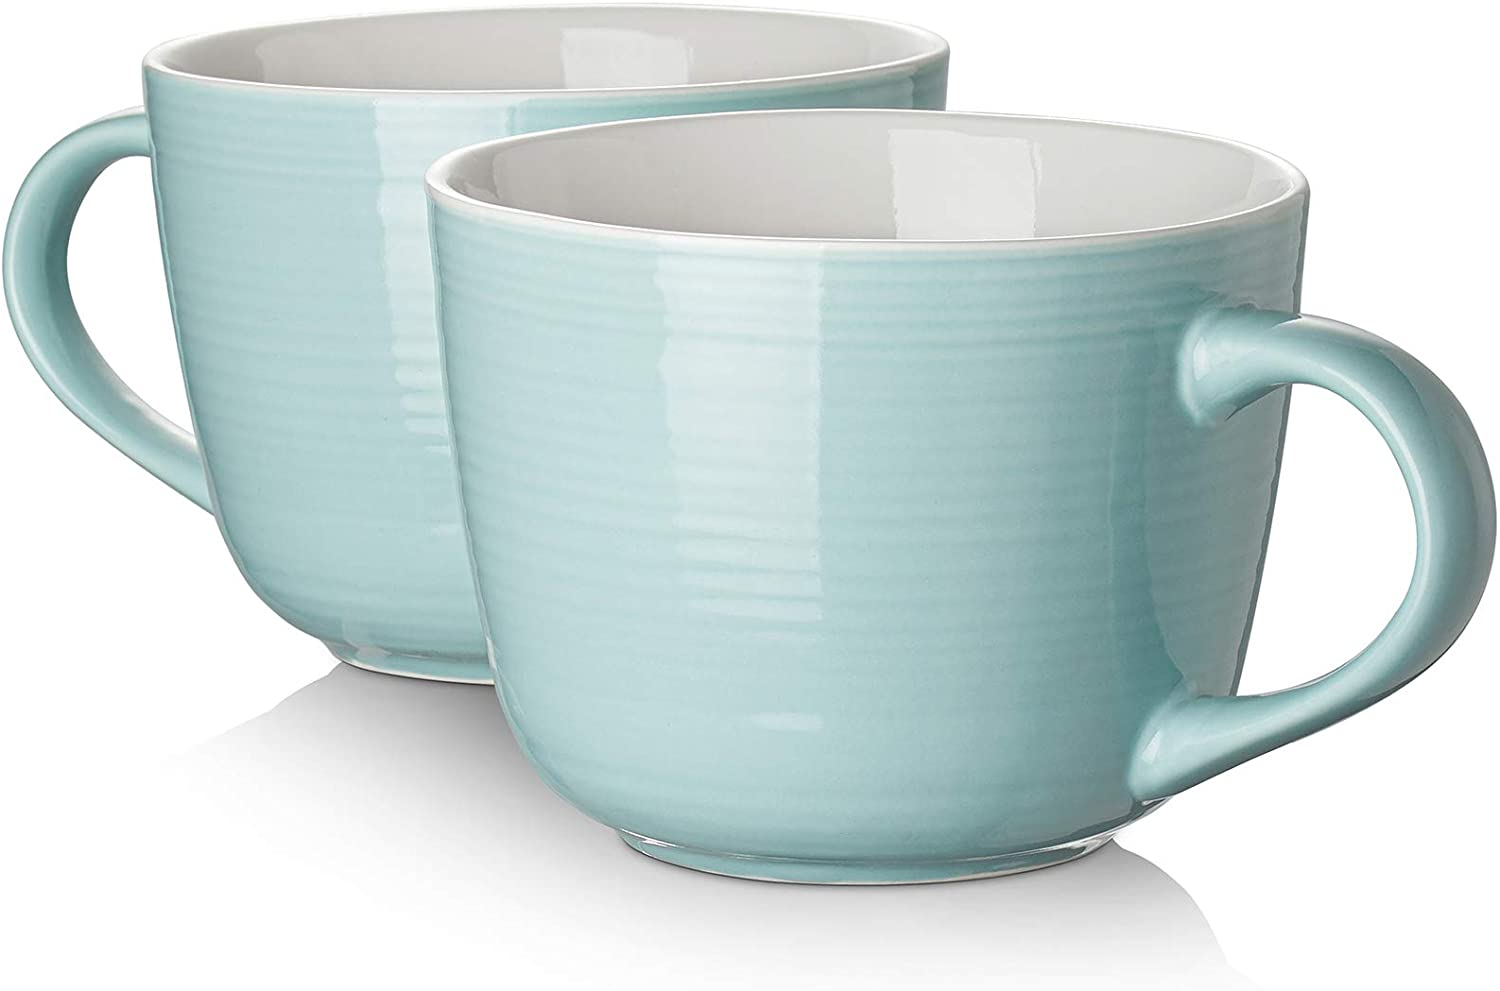 Amazon Com Dowan Porcelain Large Coffee Mug With Handle Set Of 2 17 Ounces Microwave And Dishwasher Safe Wide Mug For Cappuccino Latte Coffee Soup Tea Cereal Ice Cream Turquoise Coffee